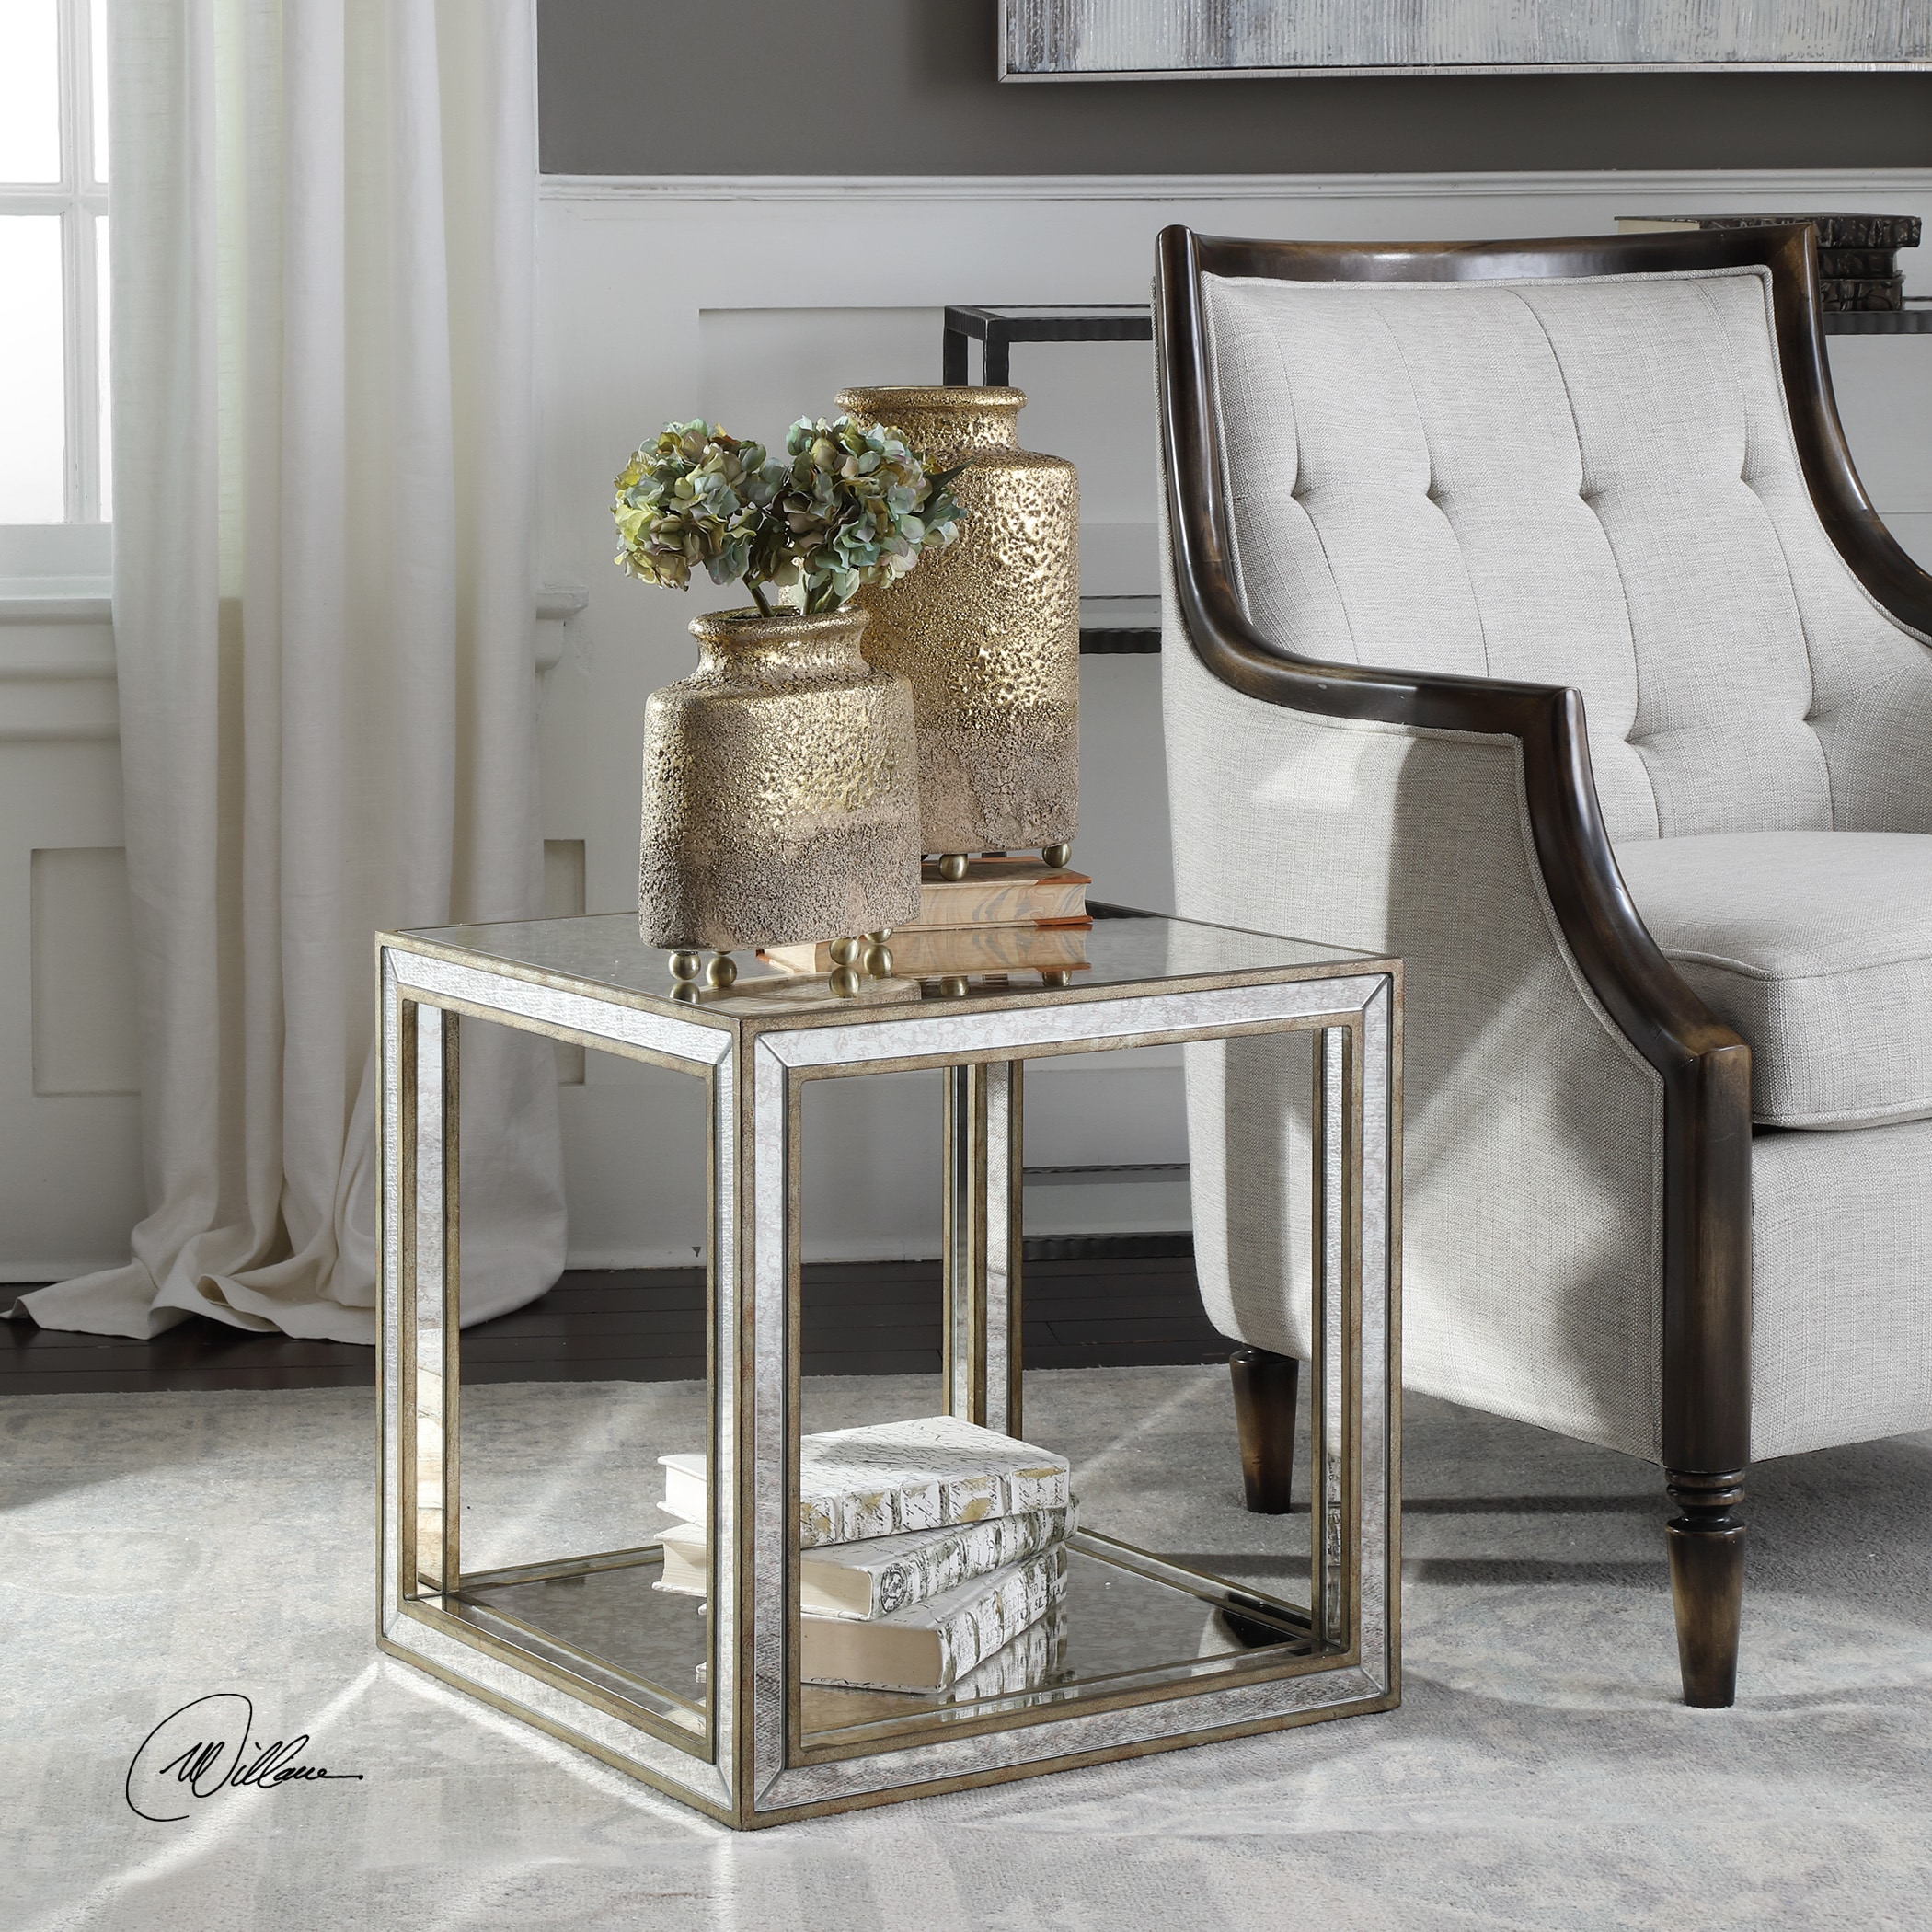 uttermost julie mirrored accent table free shipping today round end tables dog grate kohl rewards coupon solid wood crate modern furniture coffee bathroom vanity cabinets living